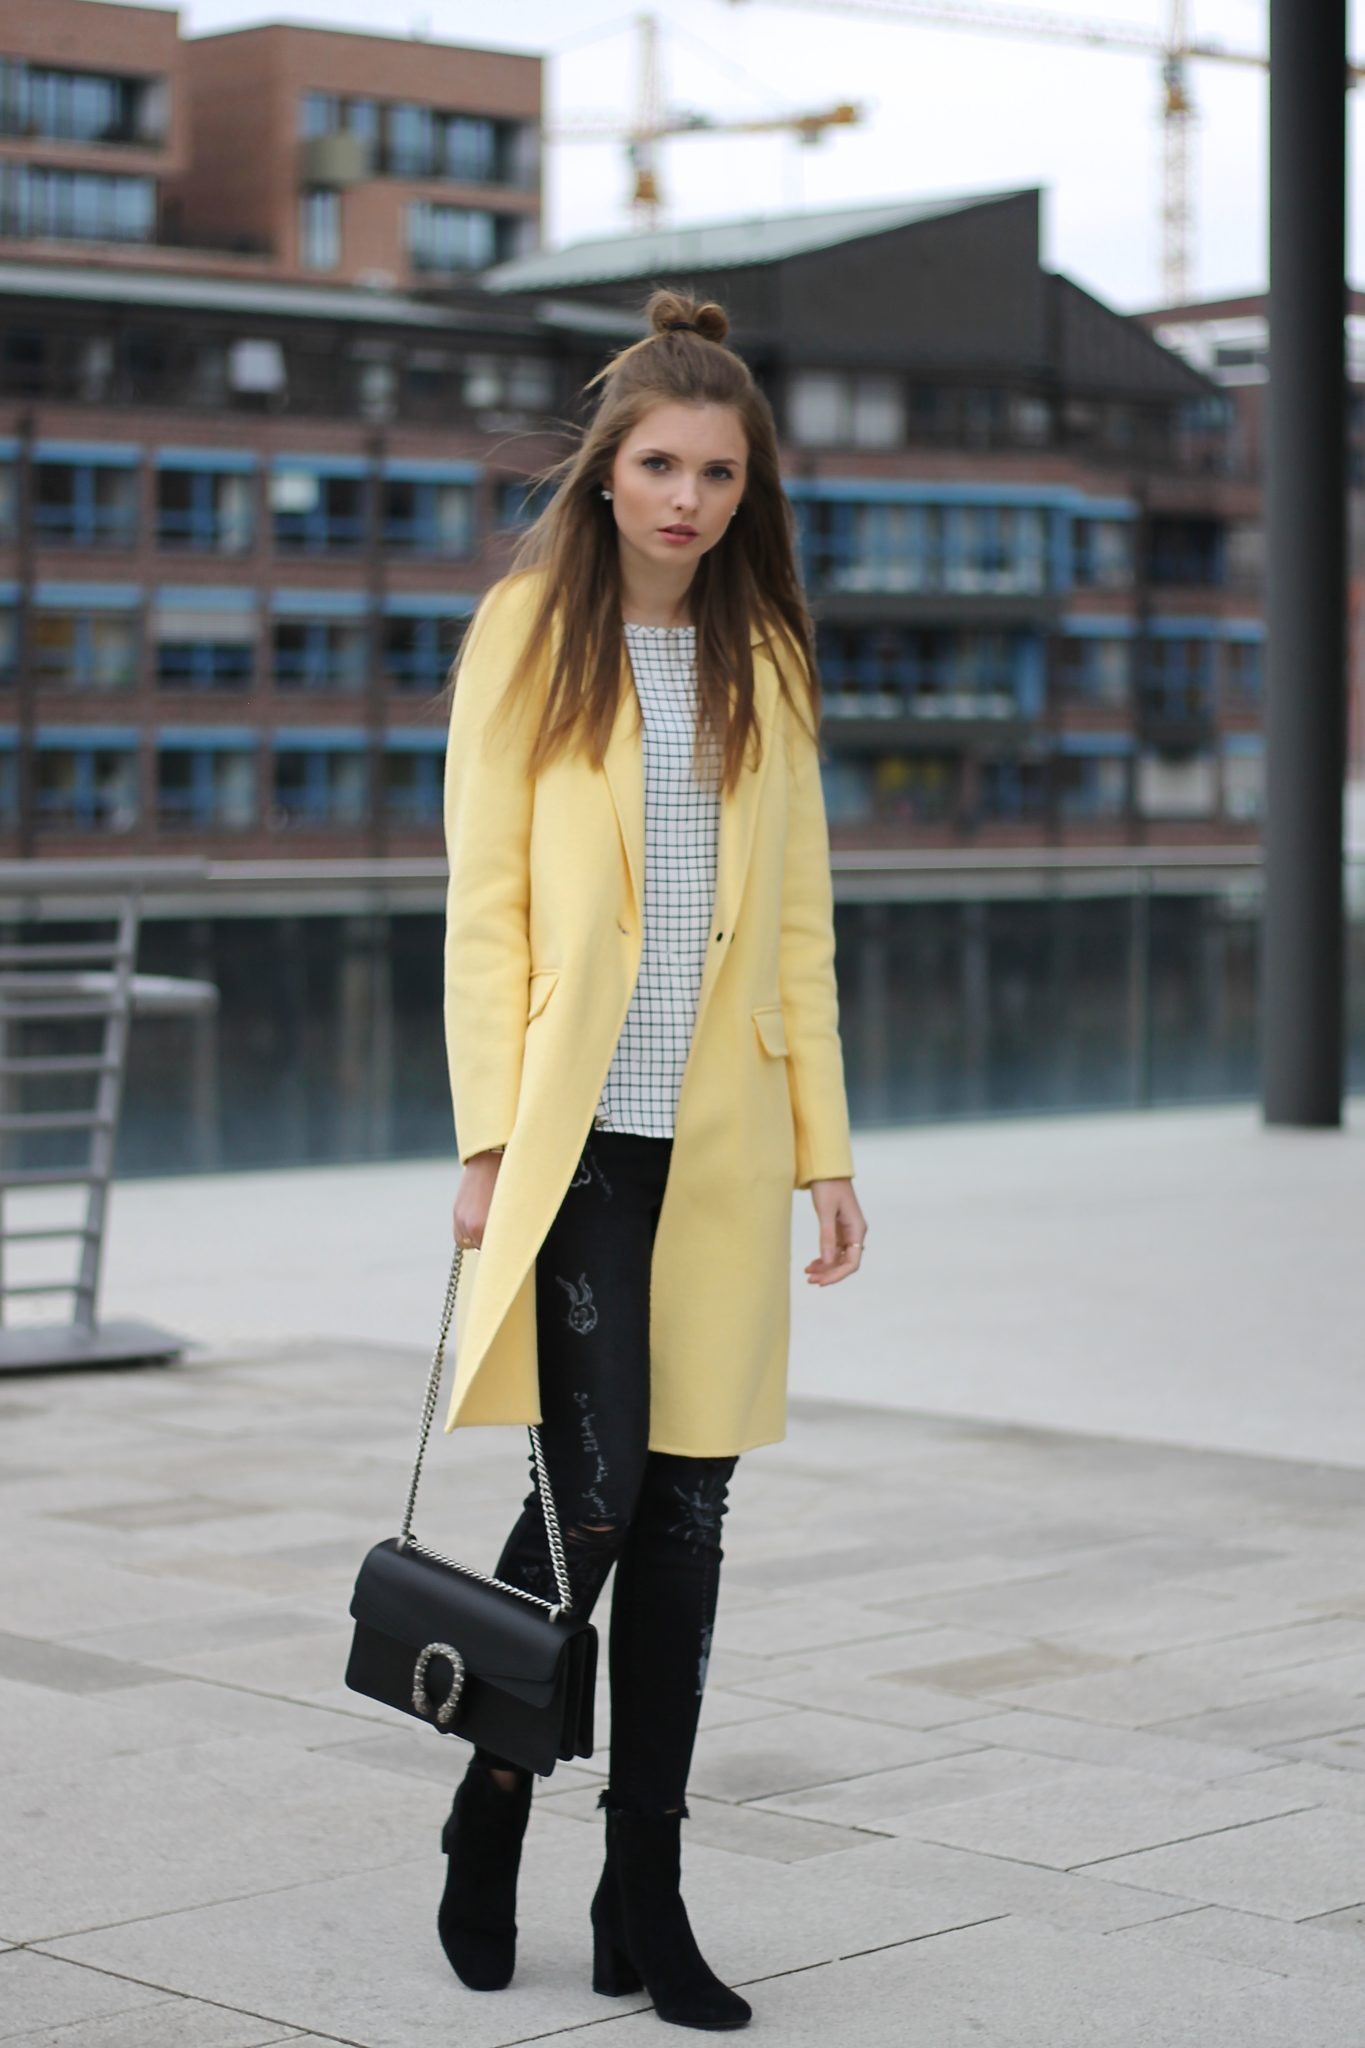 IMG 2511 - YELLOW COAT I SPRING